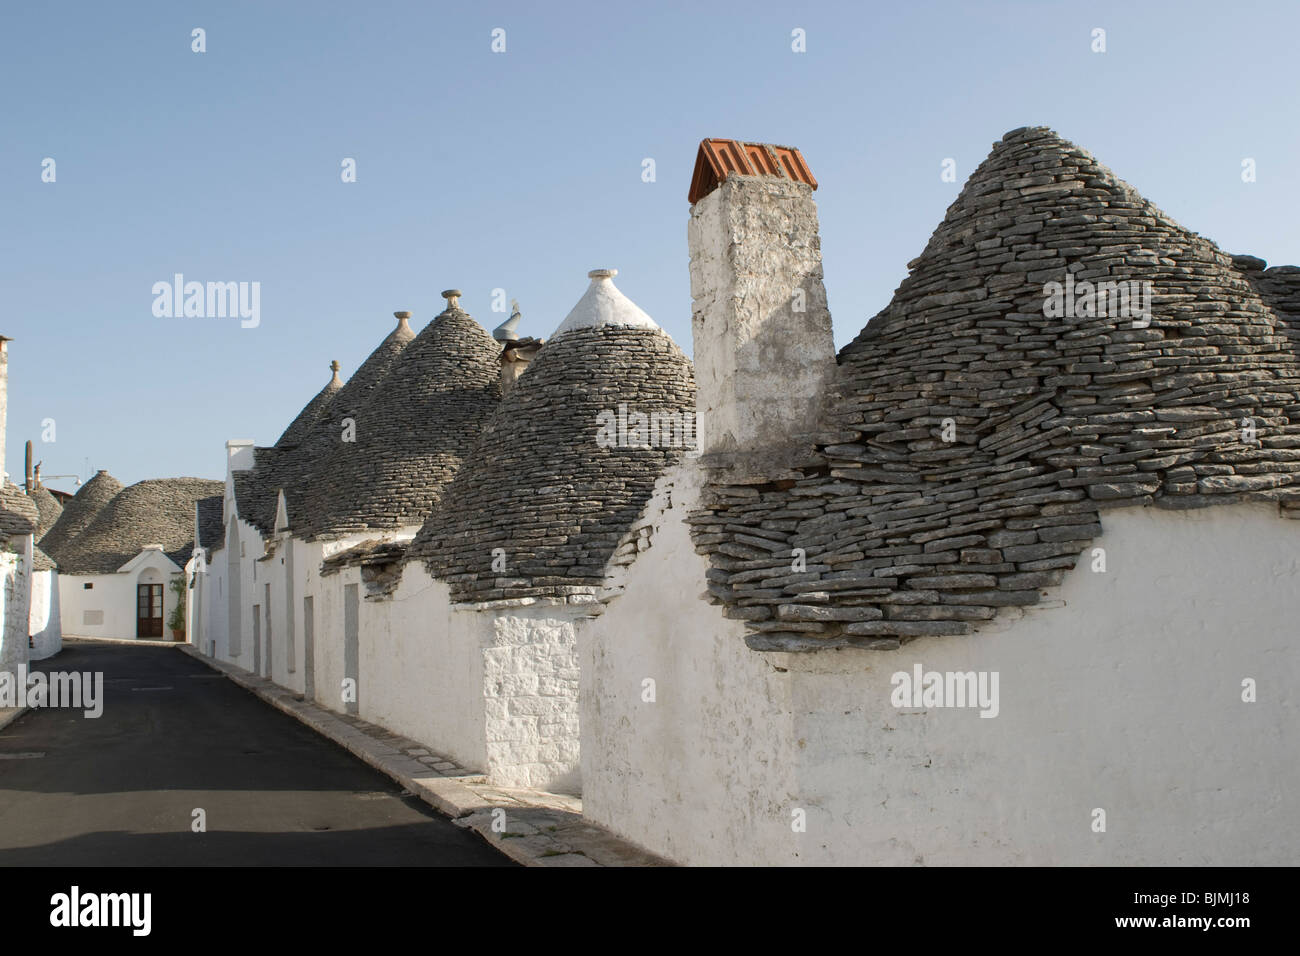 italien apulien alberobello unesco weltkulturerbe trulli gasse stock photo royalty free. Black Bedroom Furniture Sets. Home Design Ideas